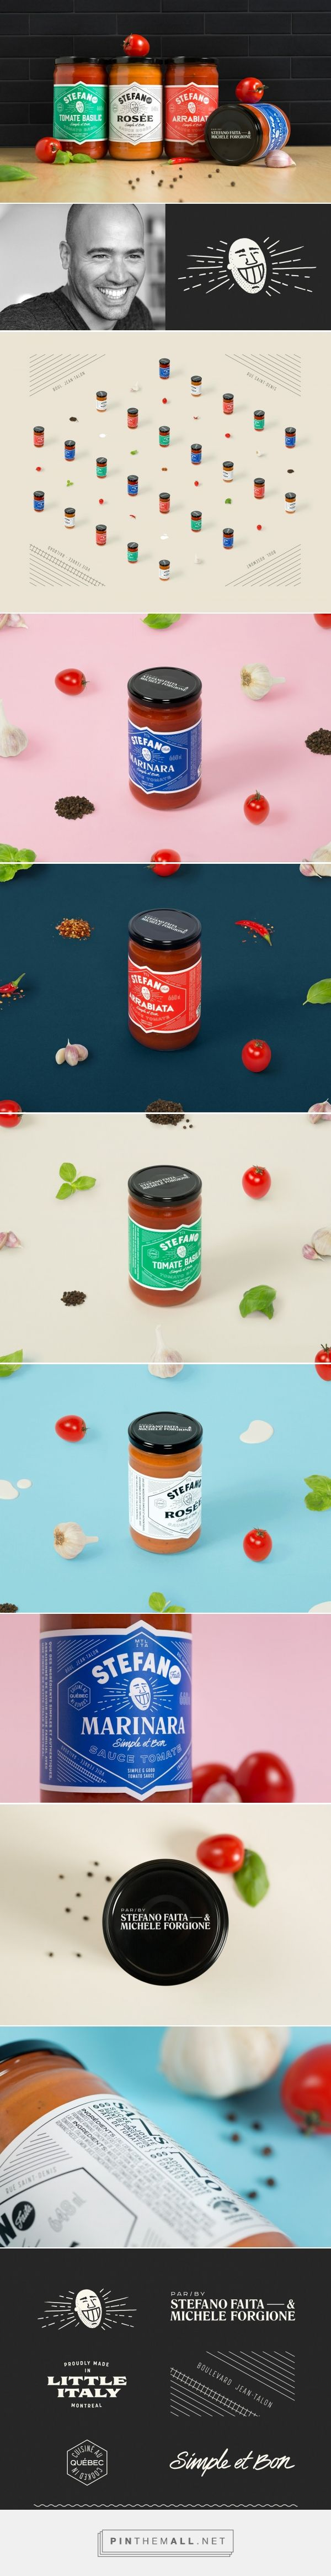 Stefano sauce packaging design by Lg2 - http://www.packagingoftheworld.com/2017/11/stefano.html